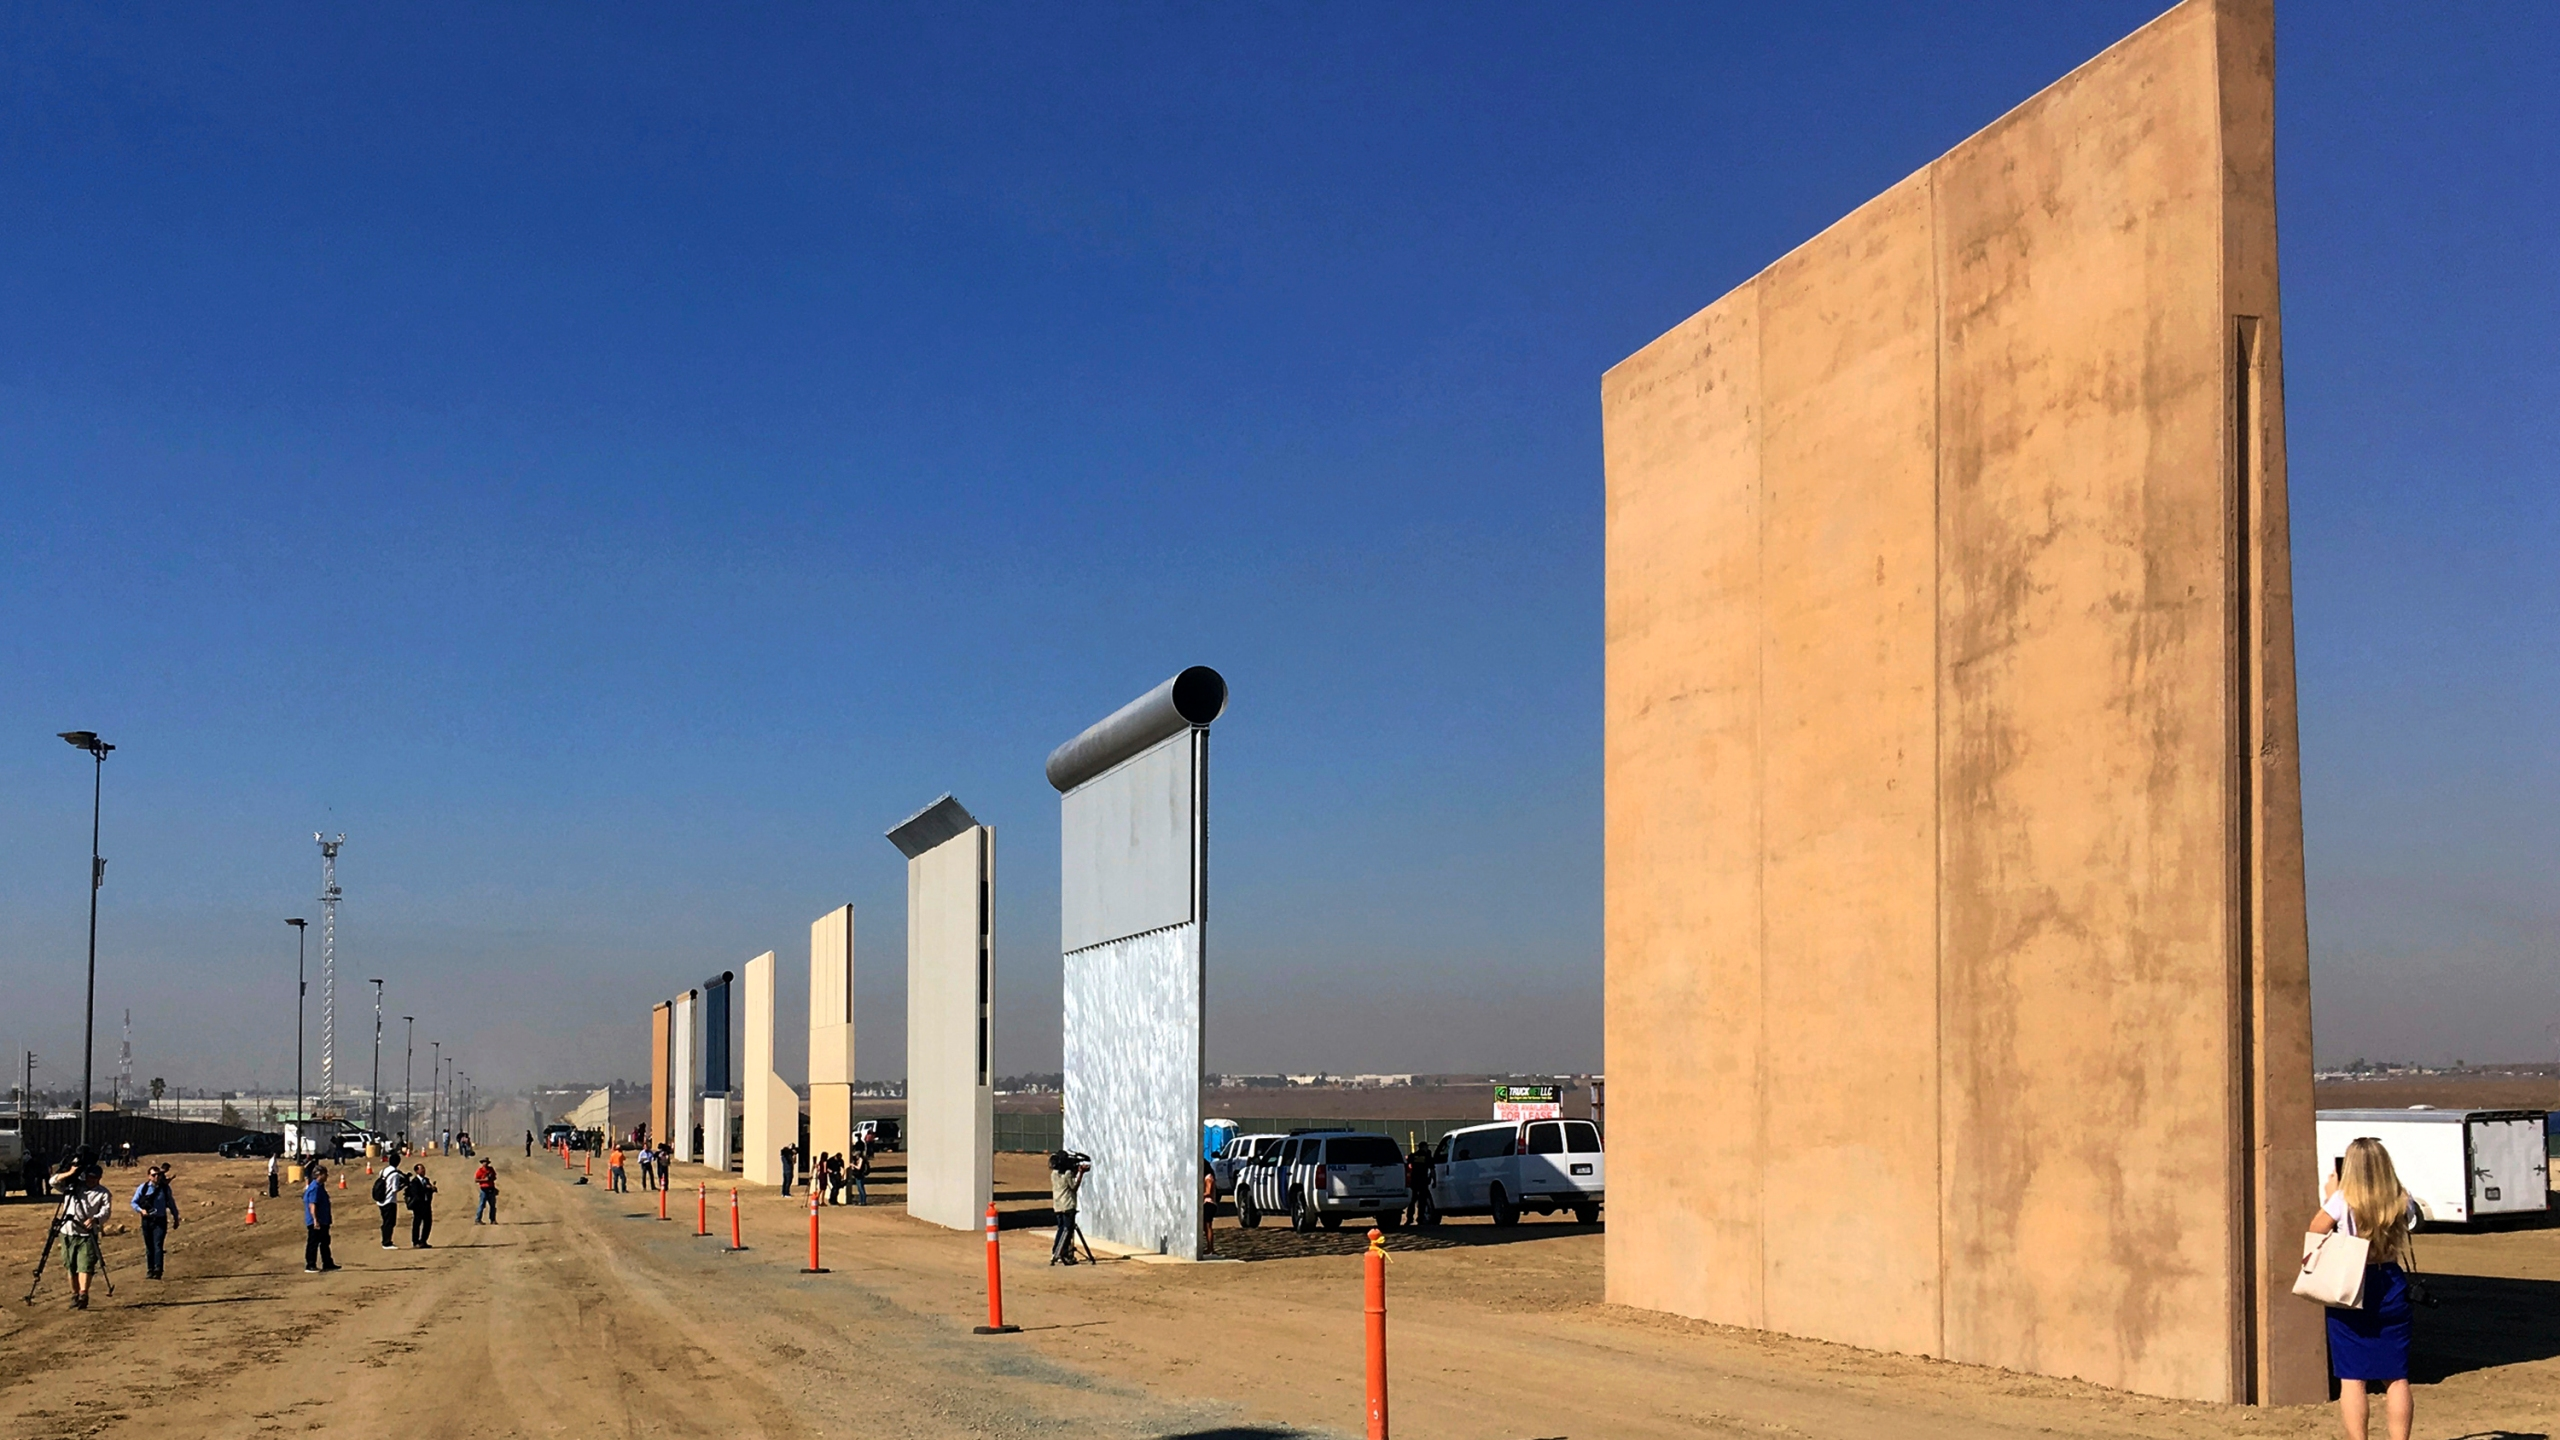 Border_Wall_Prototypes_73586-159532.jpg87763540